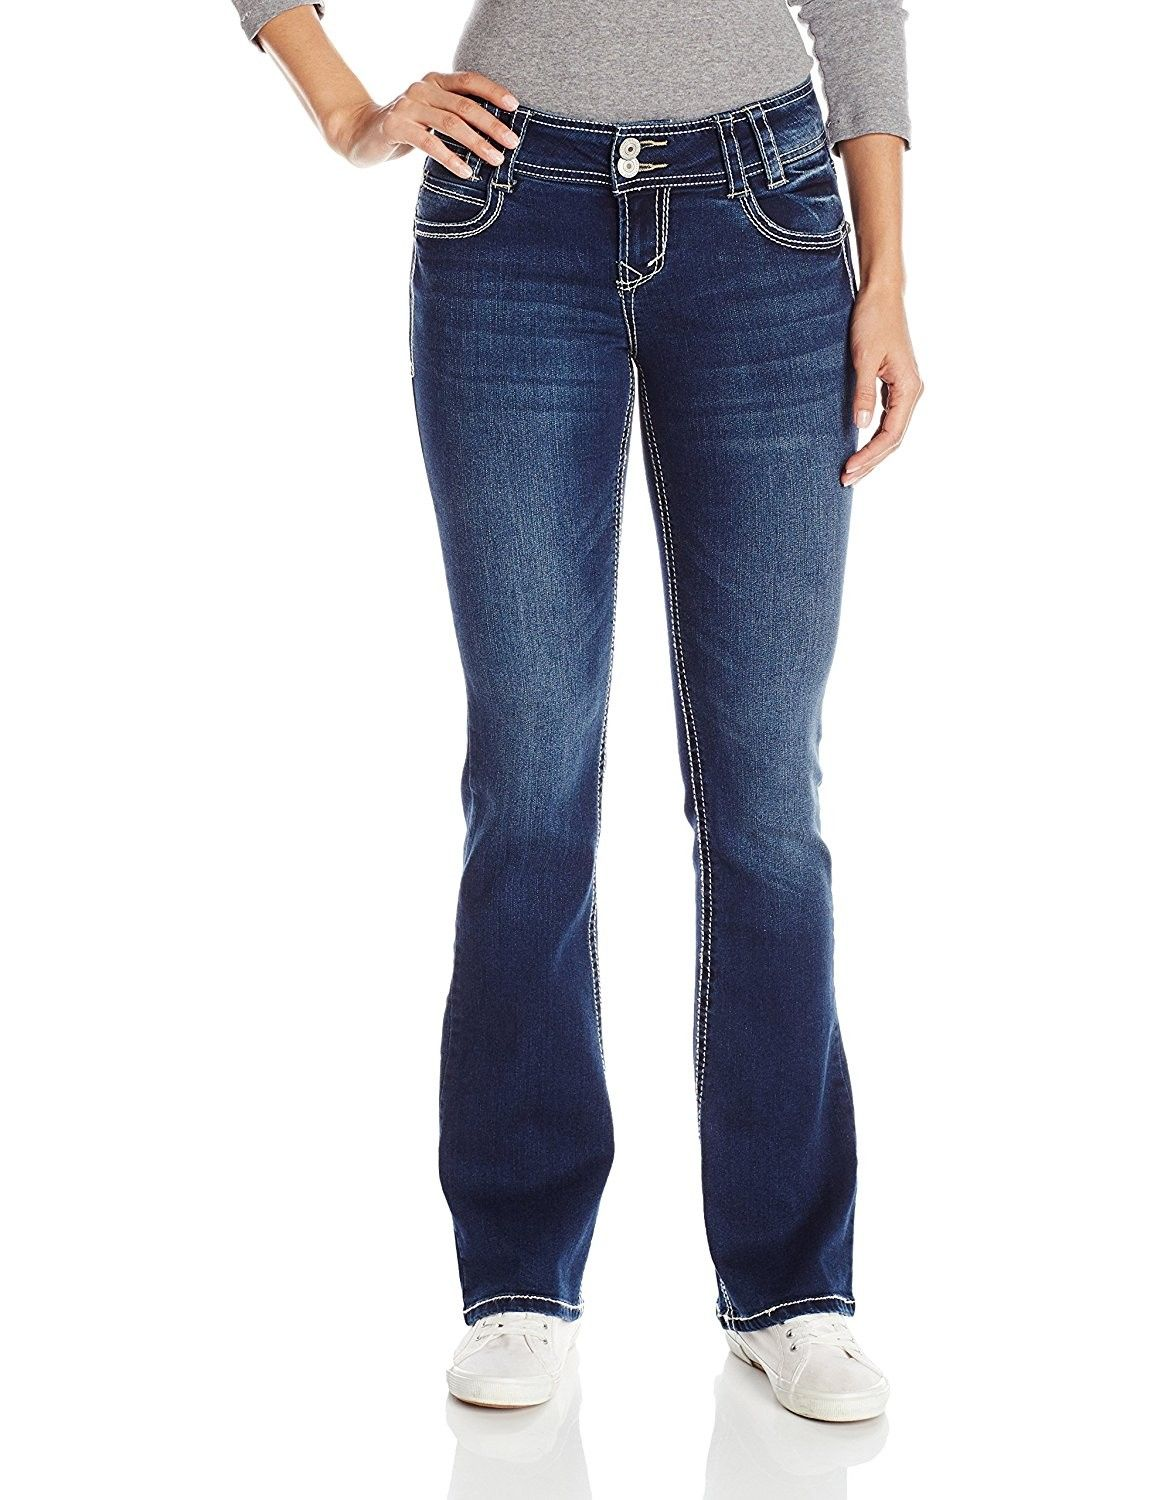 9a2f9e4a52e Women's Clothing, Jeans, WallFlower Women's Juniors Luscious Curvy Bootcut  Jean - Chrystie - CA12GHLG68H #women #fashion #clothing #style #outfits # Jeans ...